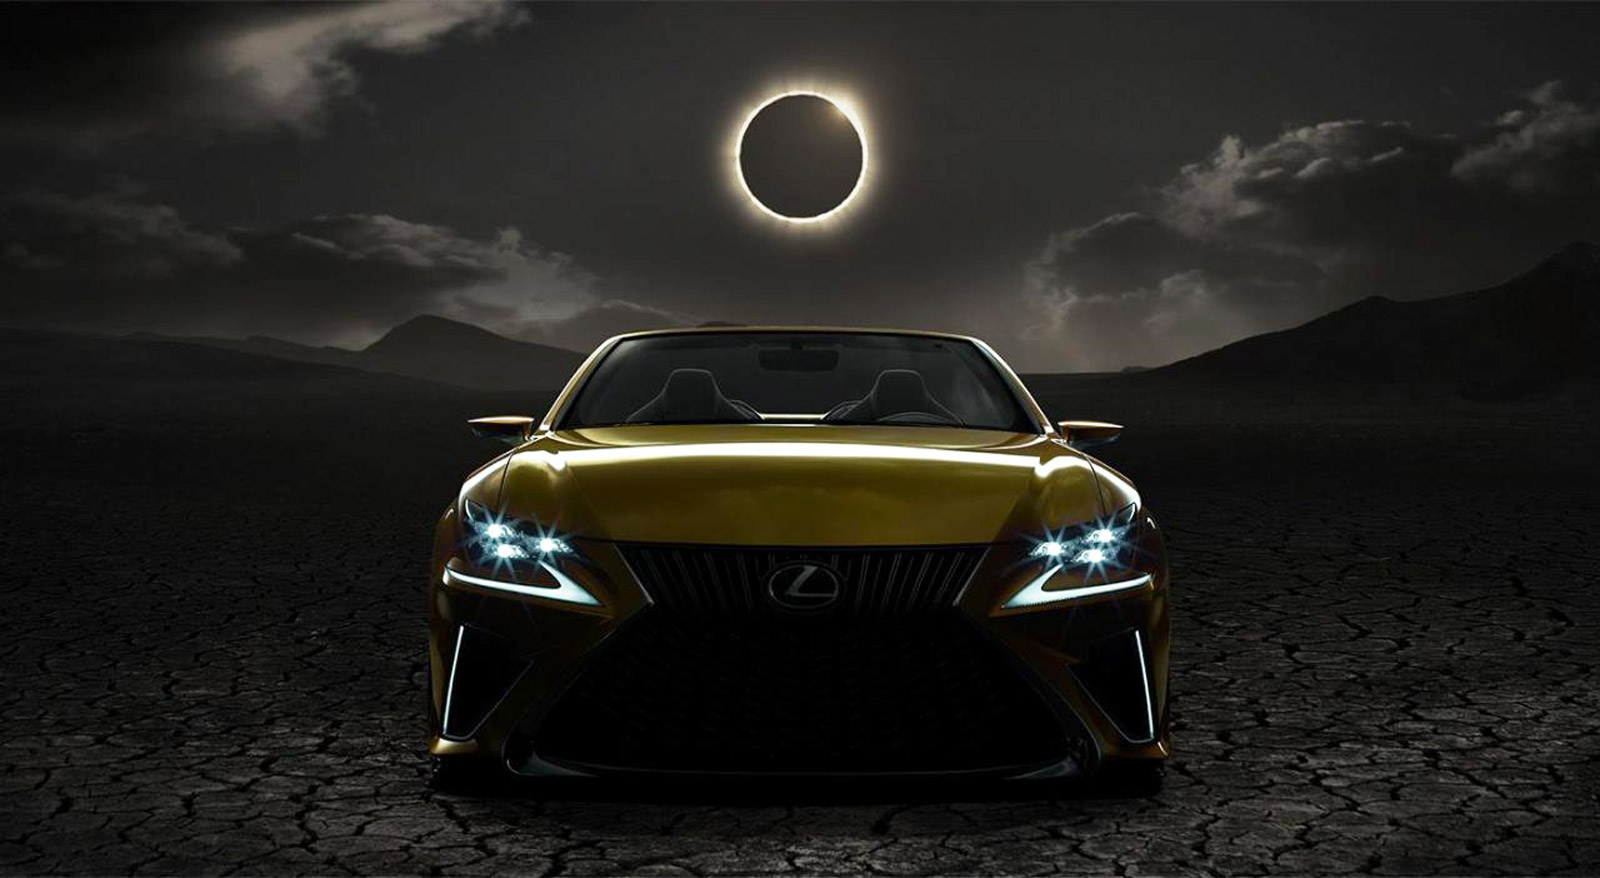 lexus releases more teasers for rc convertiblepreviewing